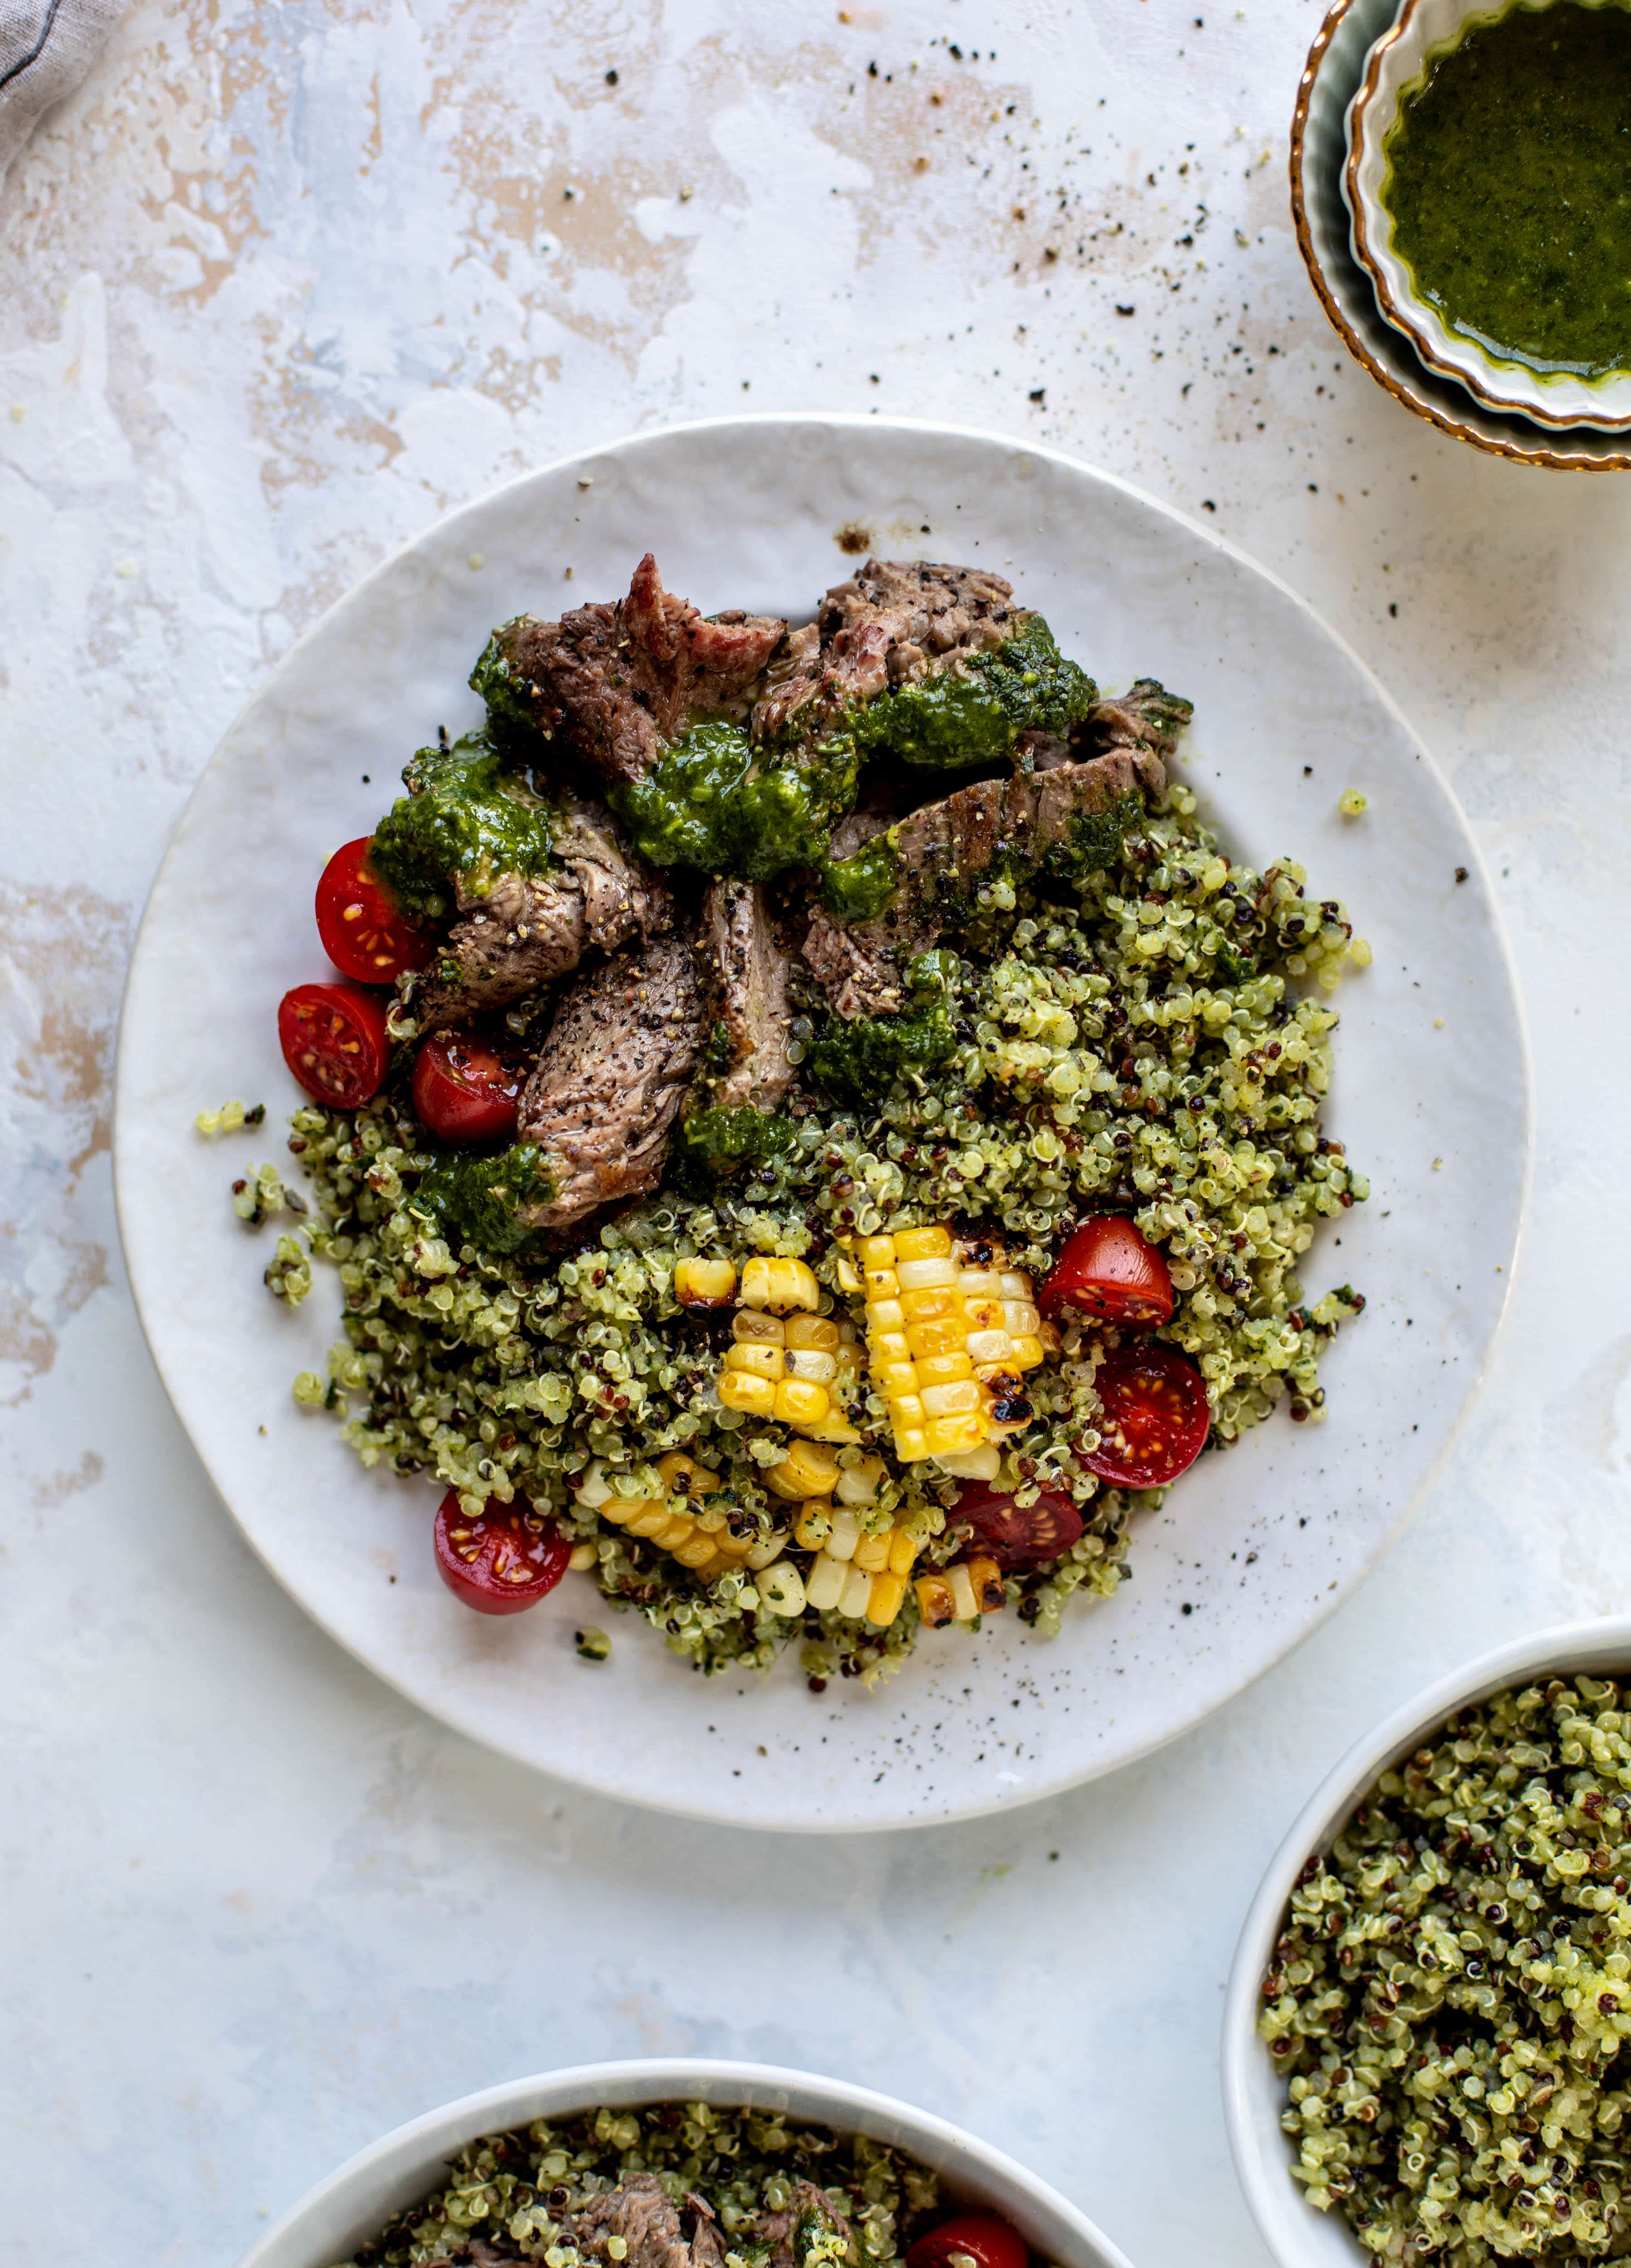 This chimichurri quinoa with flank steak is so incredibly delicious and flavorful! The steak is juicy and tender; the quinoa is loaded with flavor. Love it!